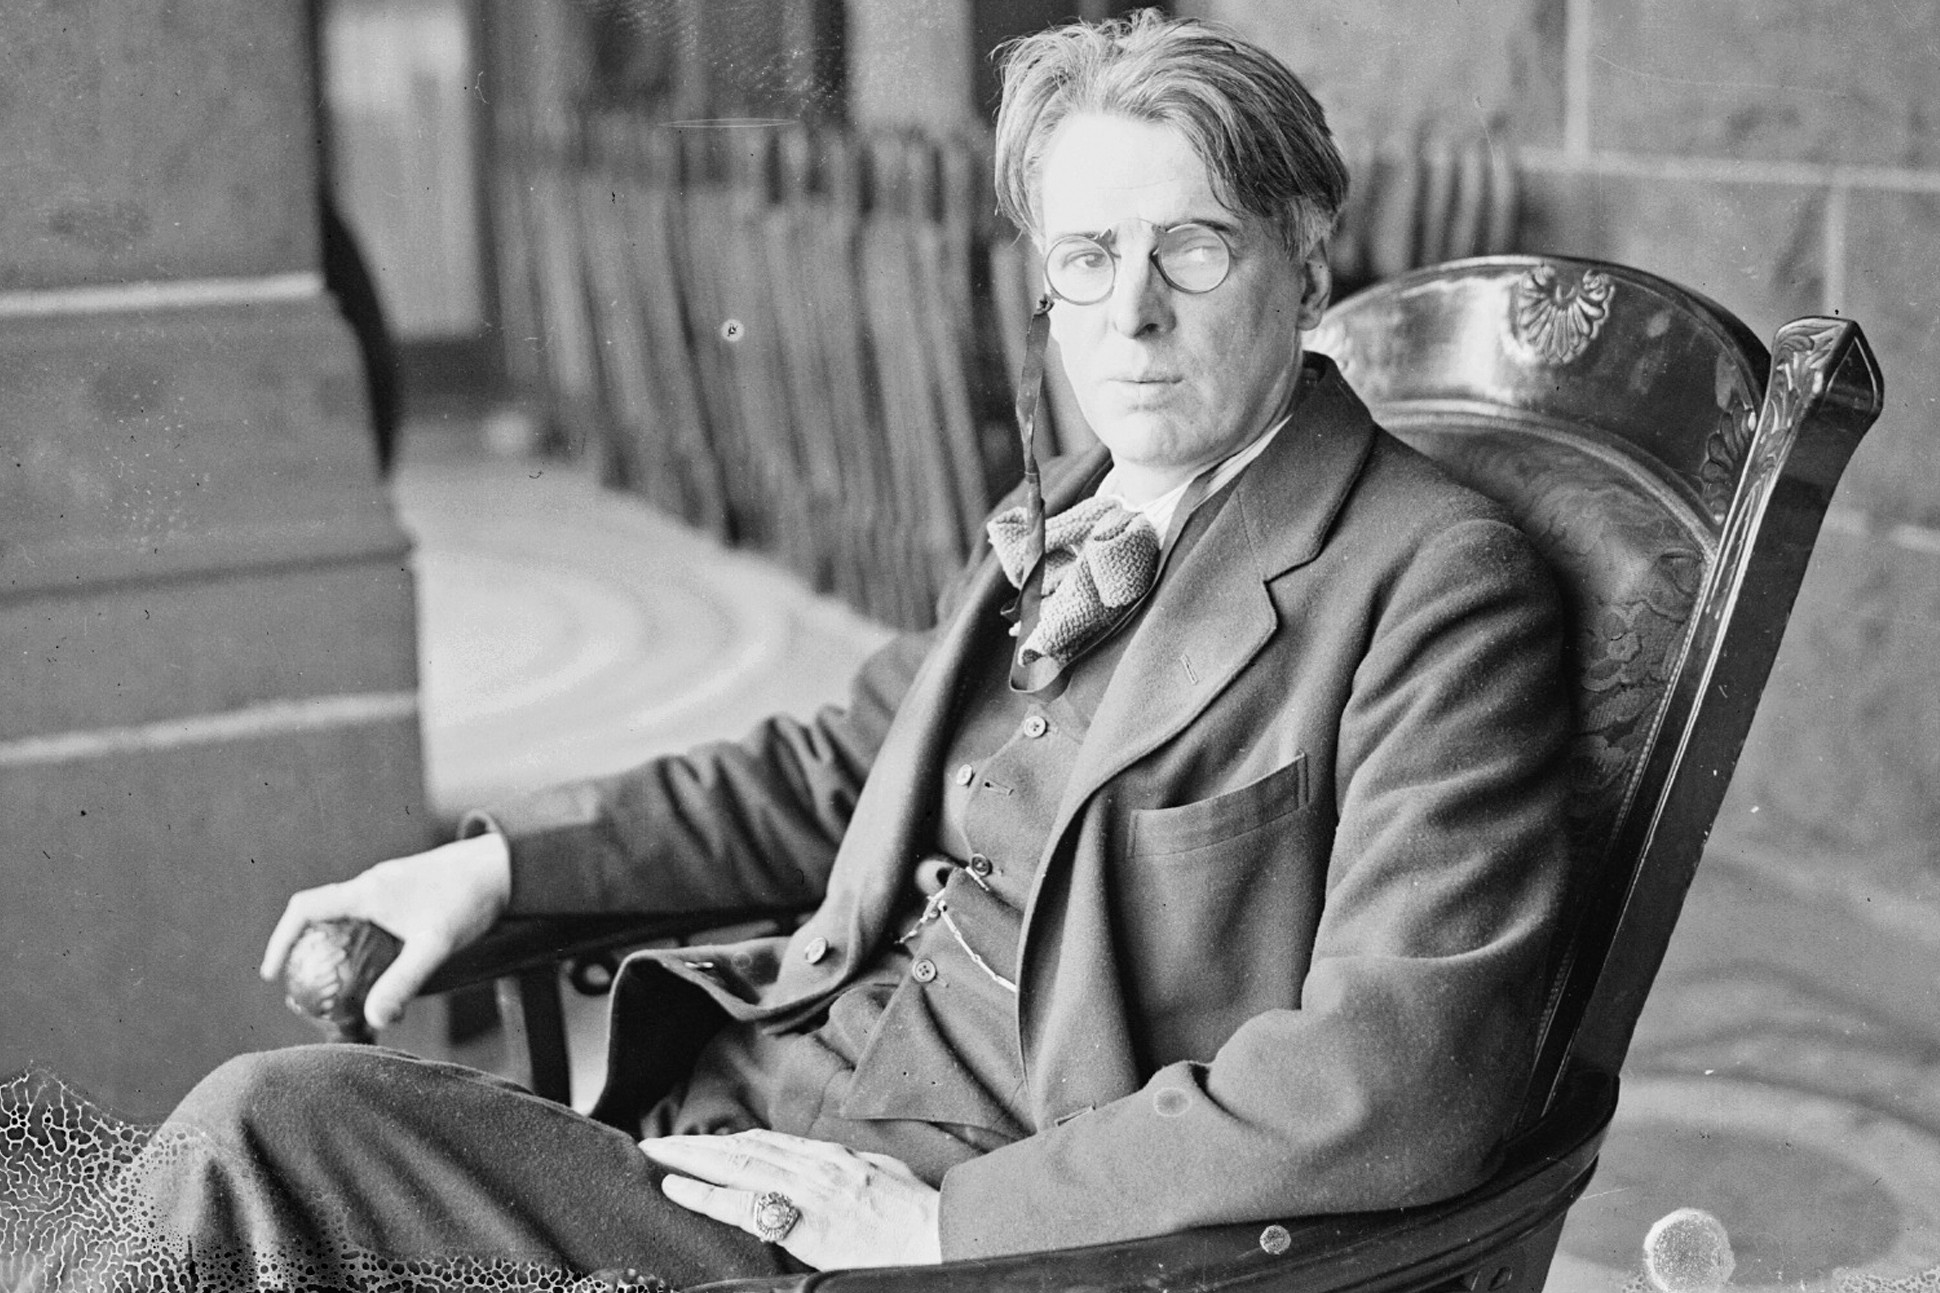 adams curse y b yeats Adam's curse - everyone's fate, everyone's tragedy the allusion to the biblical story of adam and eve in william butler yeats' poem, adam's curse, reflects the poem's pessimistic theme: the tragic nature of fate.